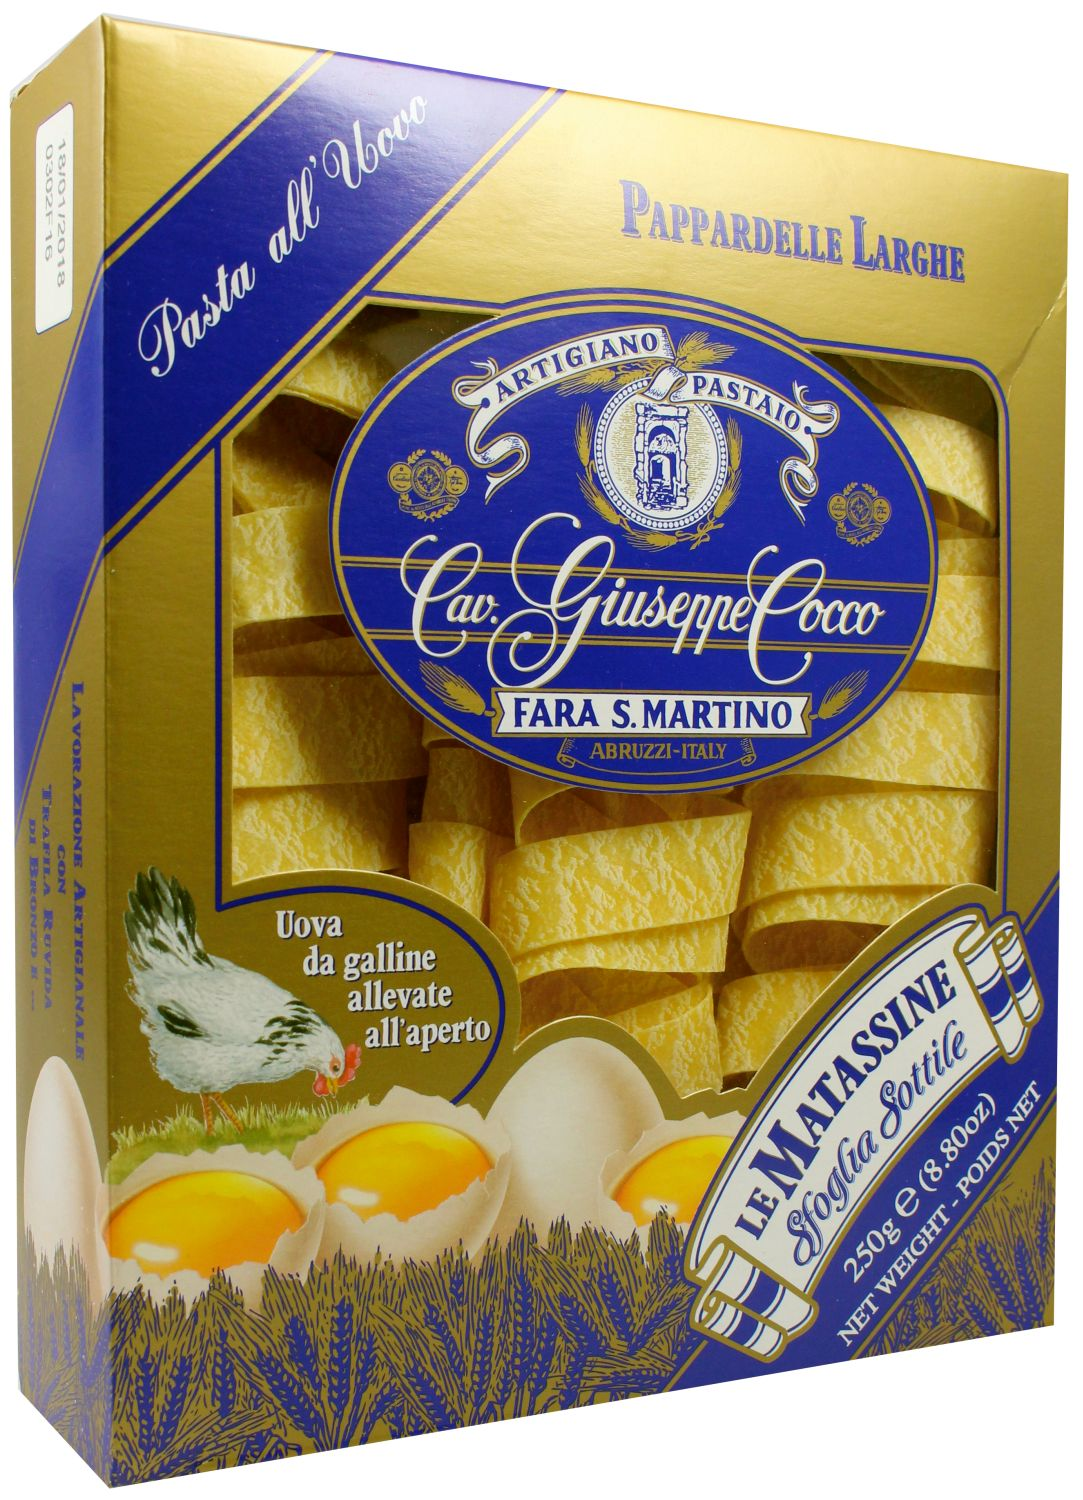 Pappardelle larghe - breite Eierbandnudeln 250 g - Guiseppe Cocco